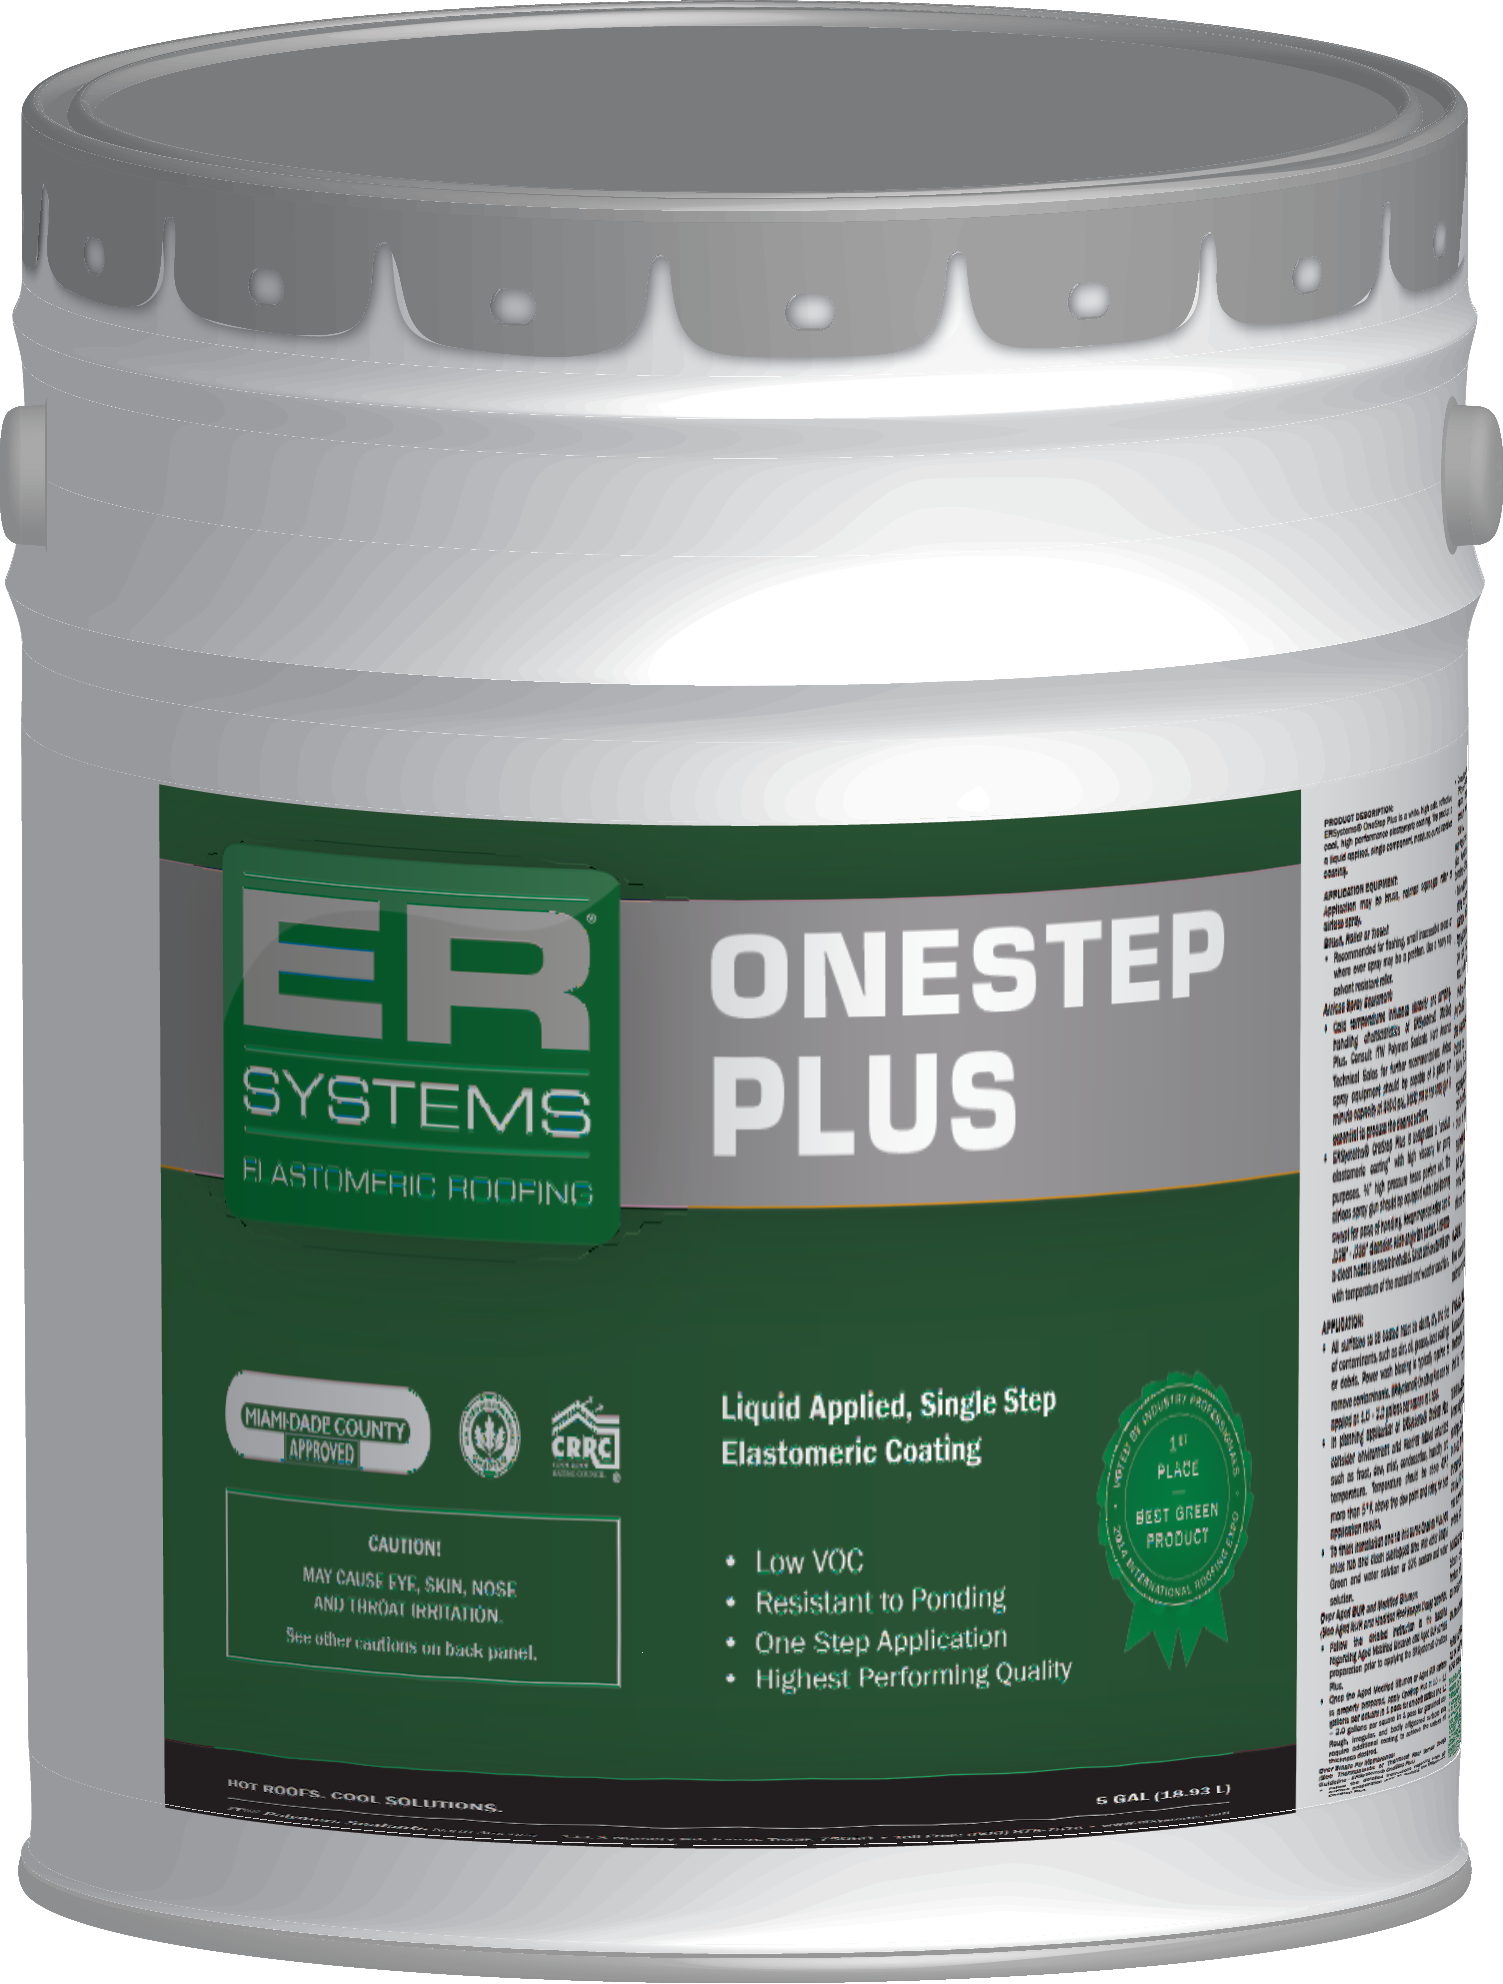 ER One Step Plus 5 Gal 2016-04-27 [MOCKUP]